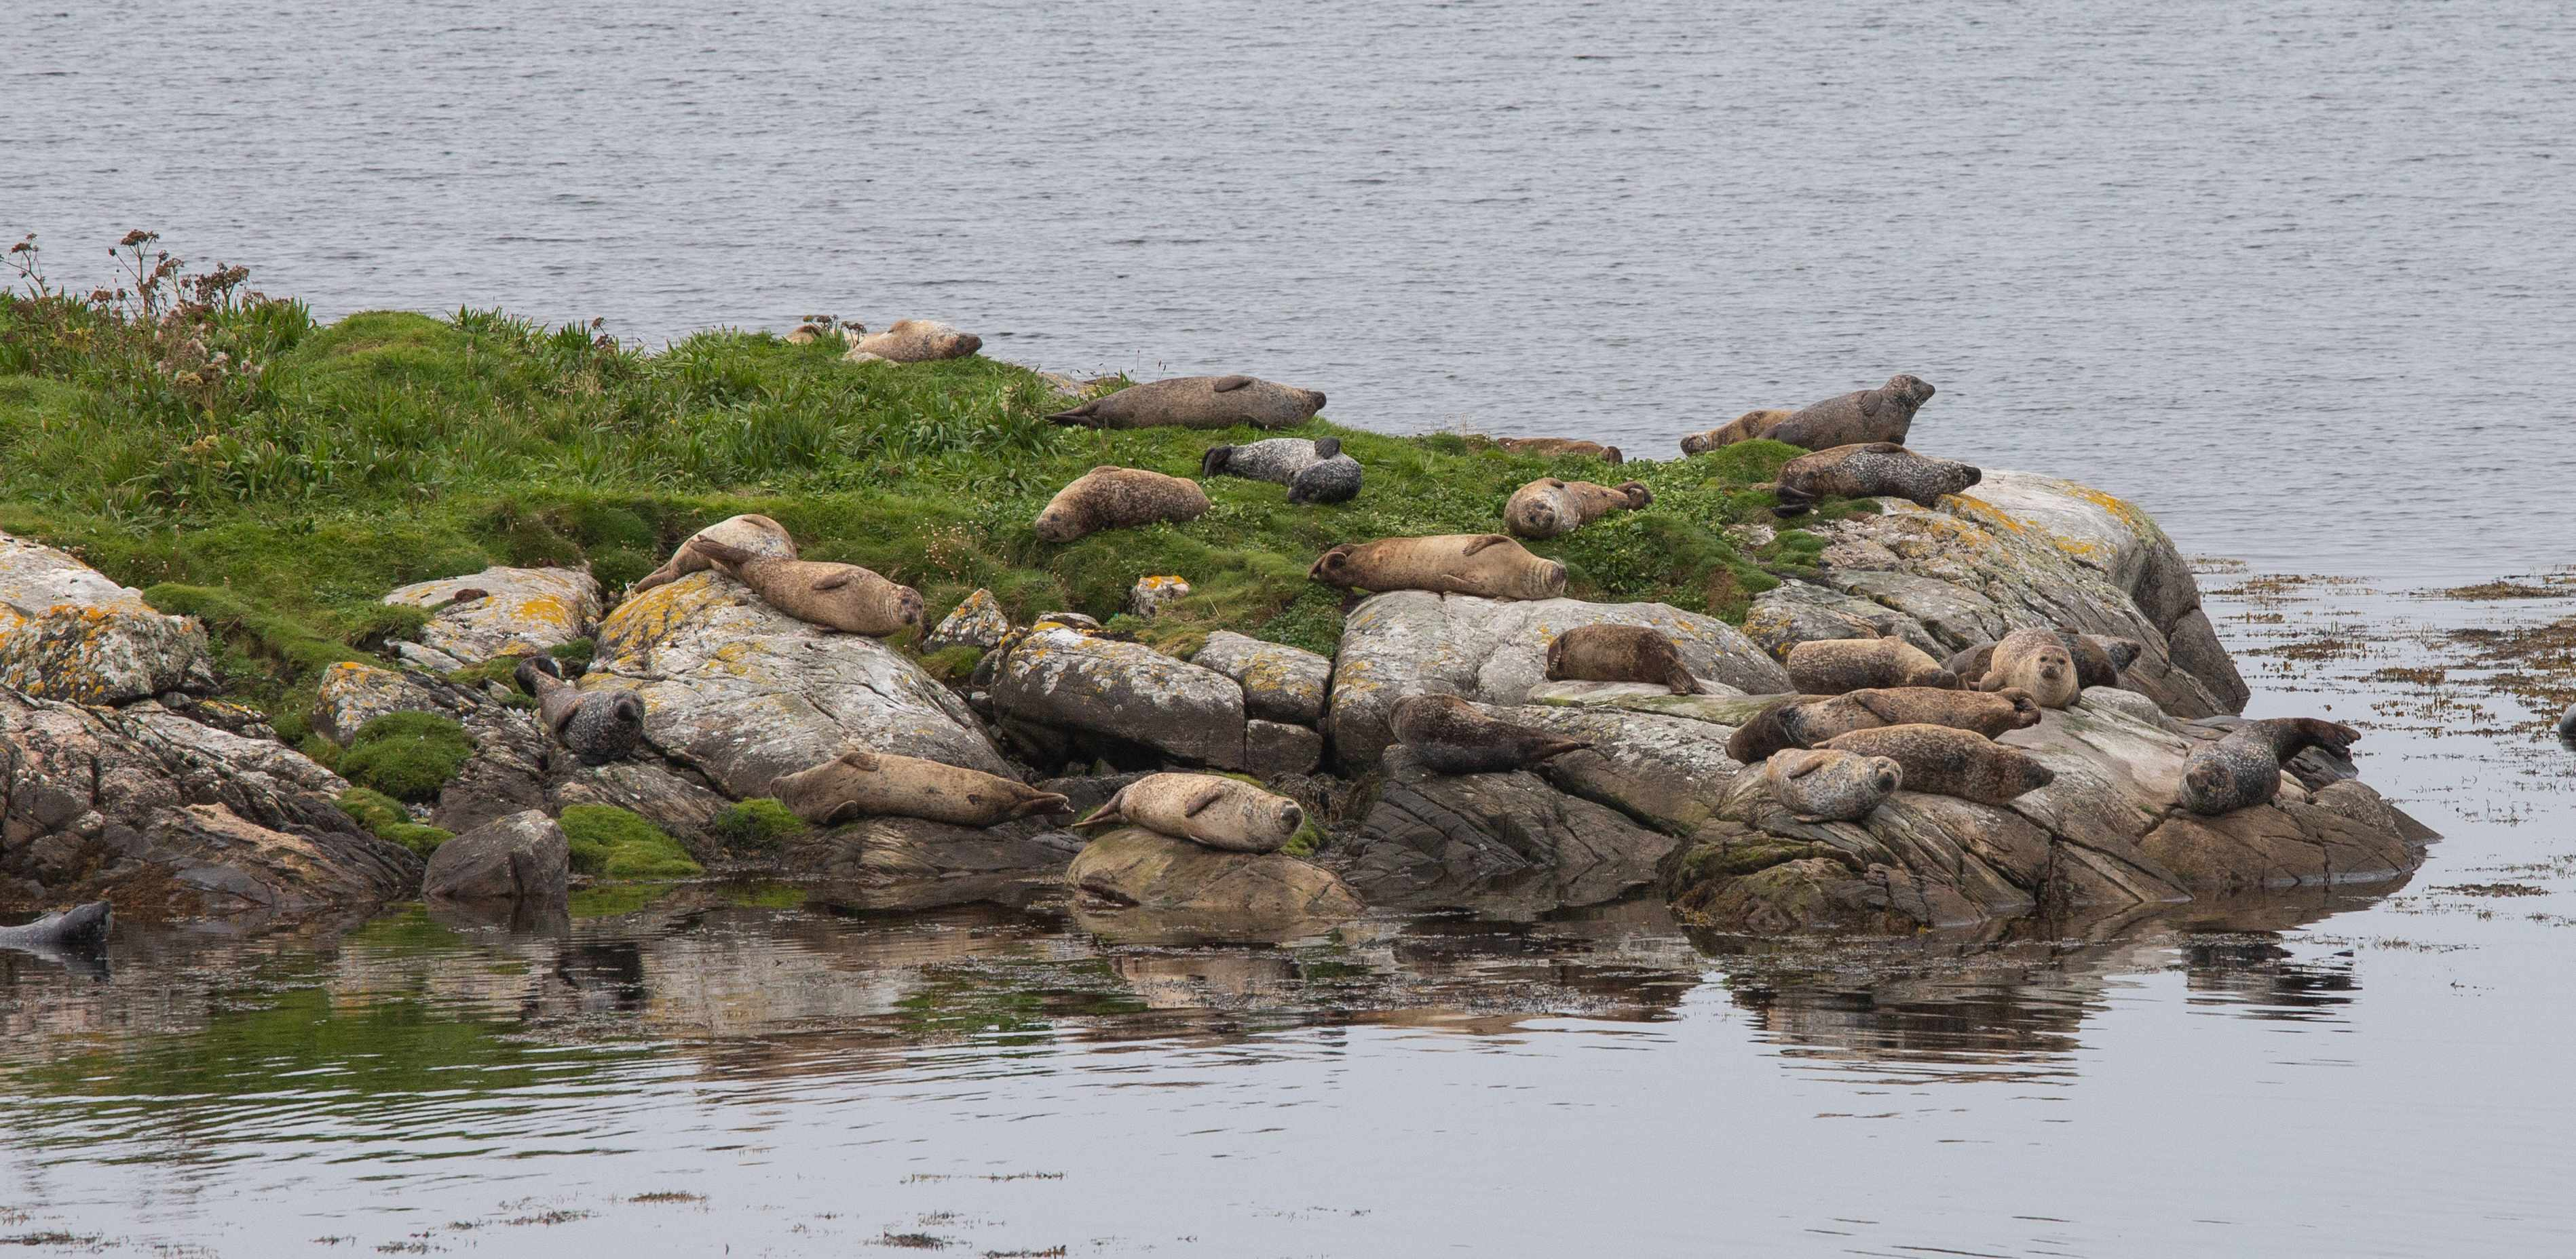 Seals hauled out on rocks